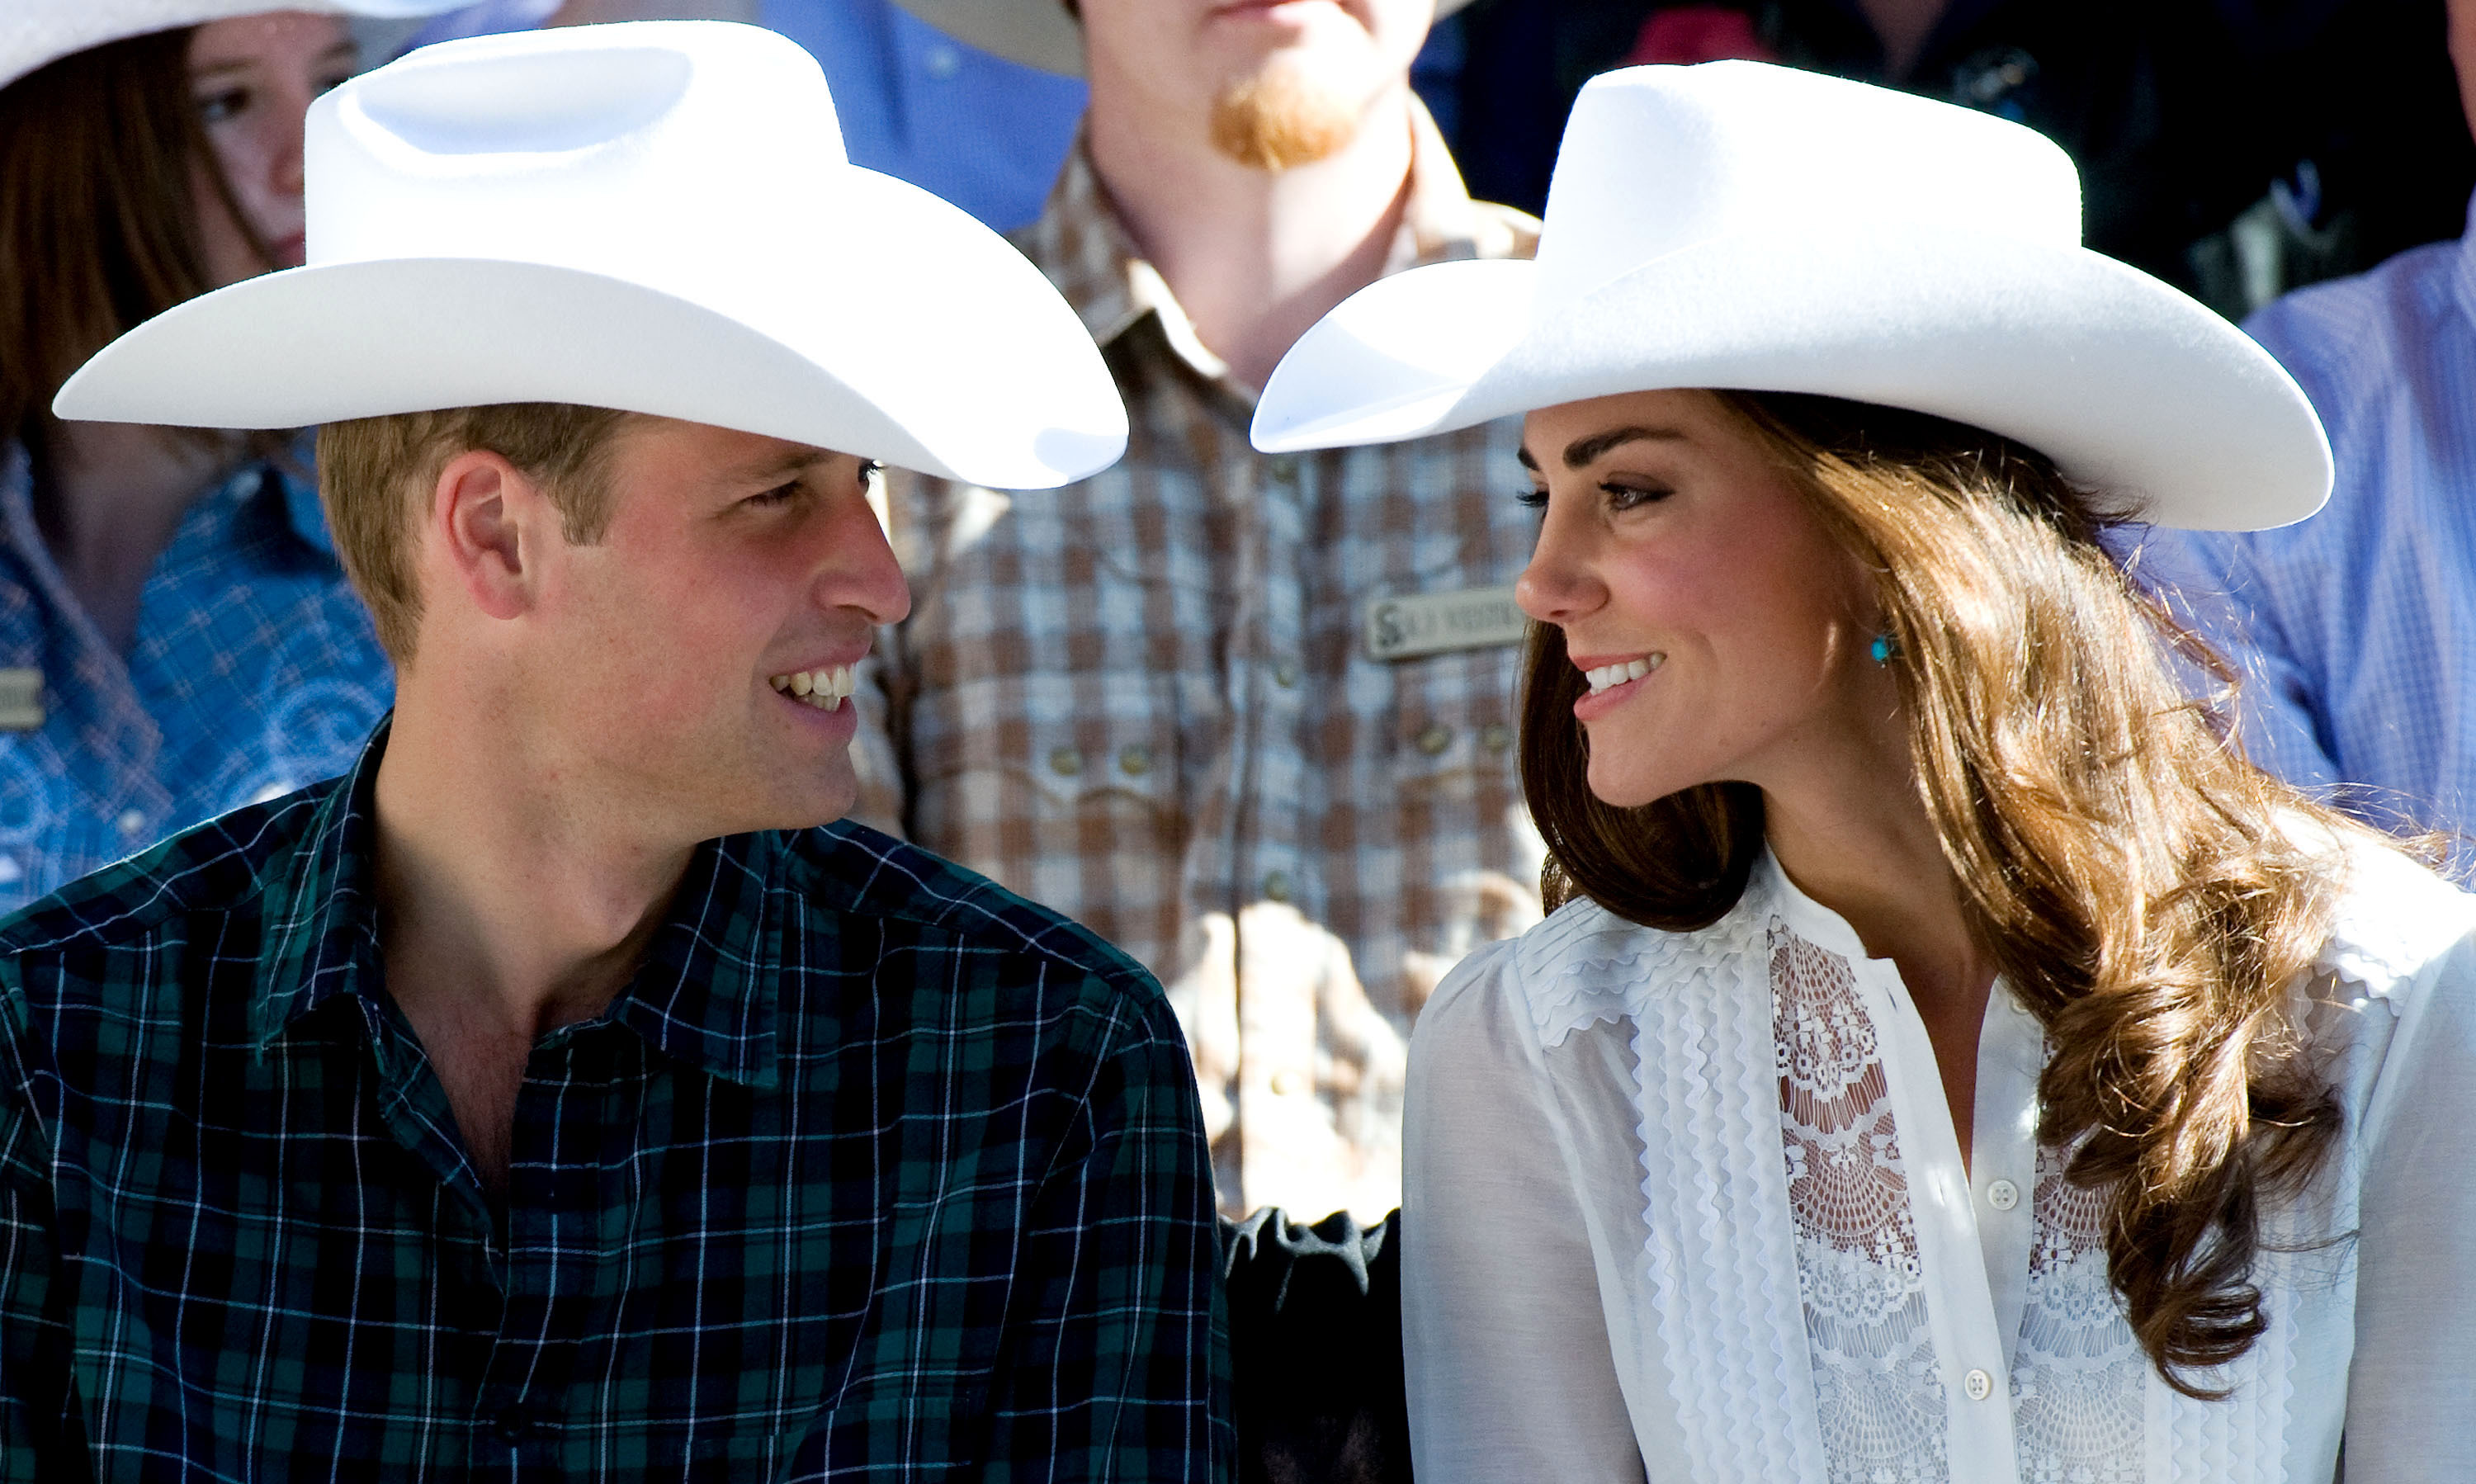 Sometimes a match made in heaven happens above the neck, like the Duke and Duchess of Cambridge sporting matching white cowboy hats at the Calgary Stampede.